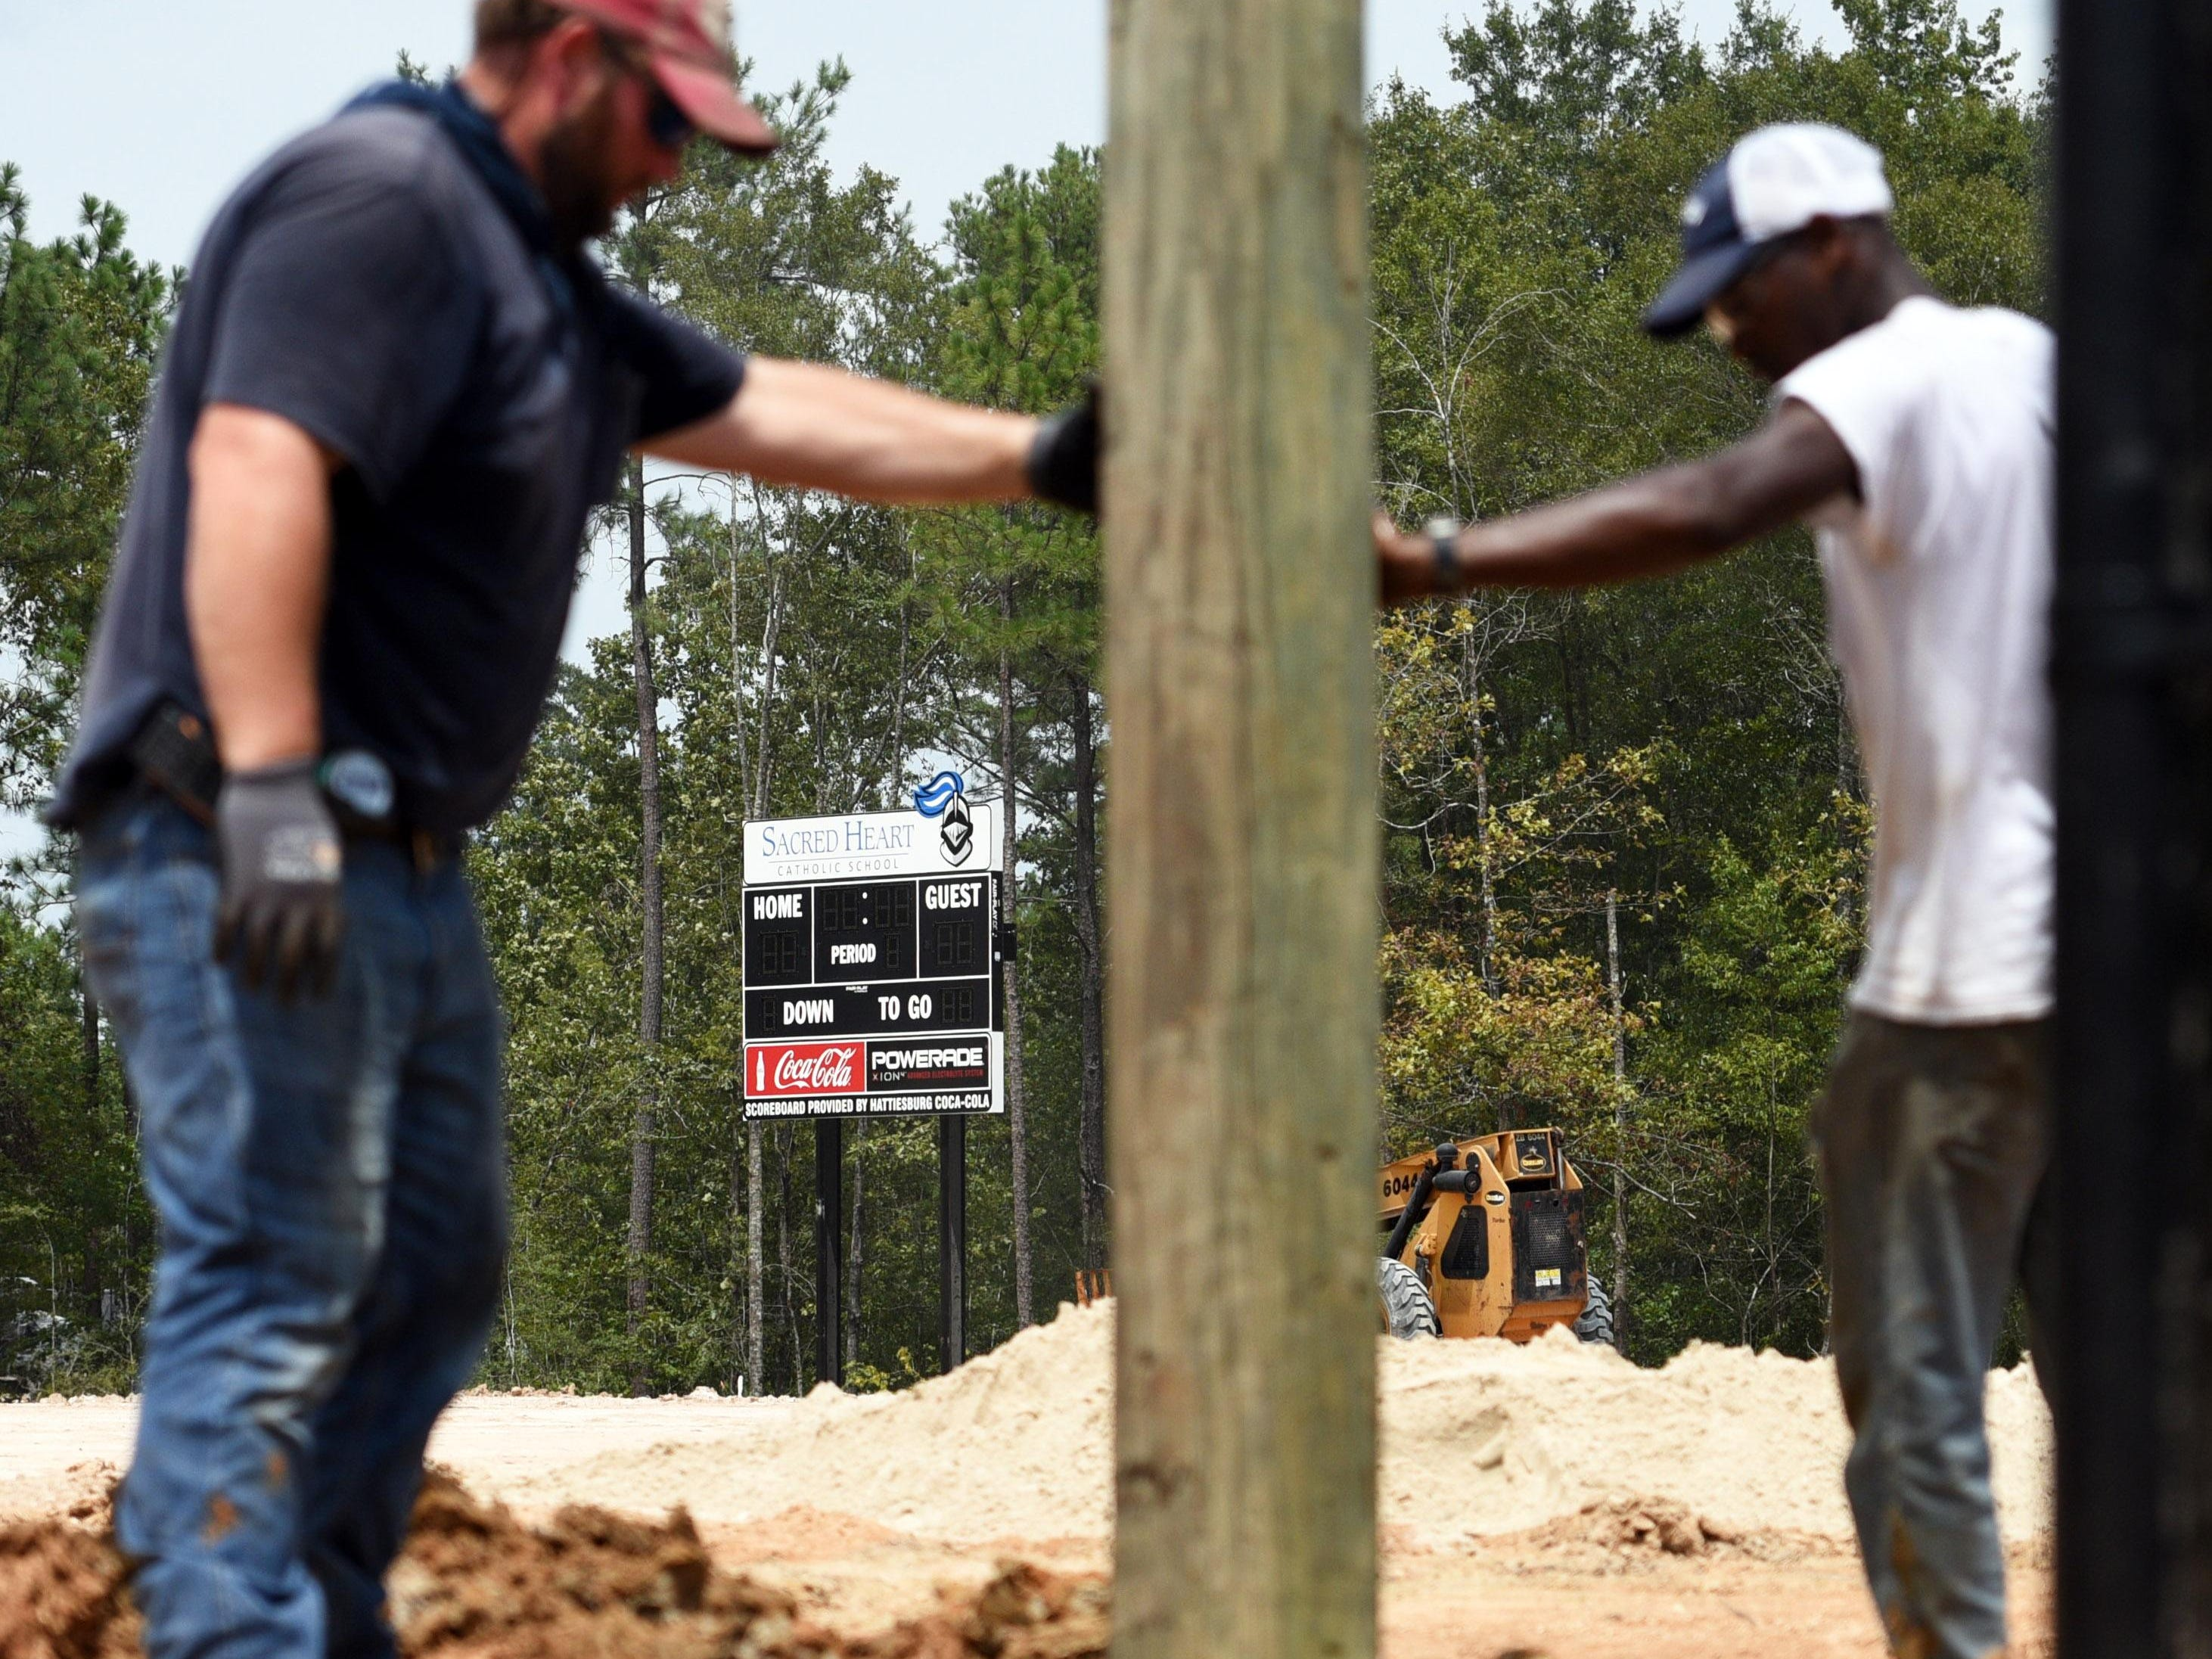 Doleac Electric Co. employees Thomas Simmons and Jamal McDonald work at the site of Sacred Heart's new football field on Friday afternoon. The poles will be used as the base structure for the press box.